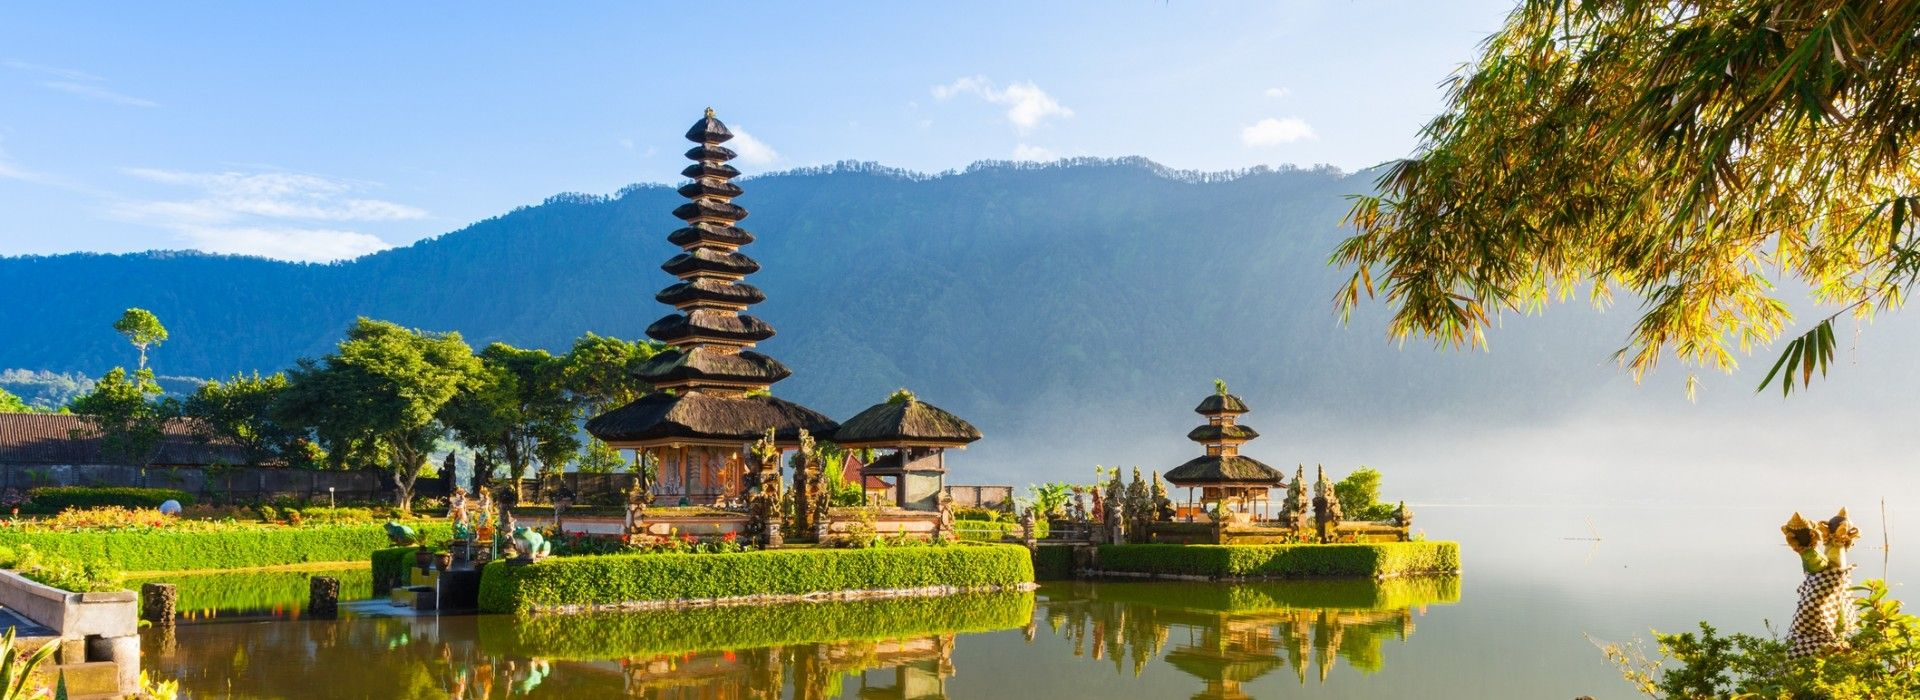 Cruise Tours in Indonesia